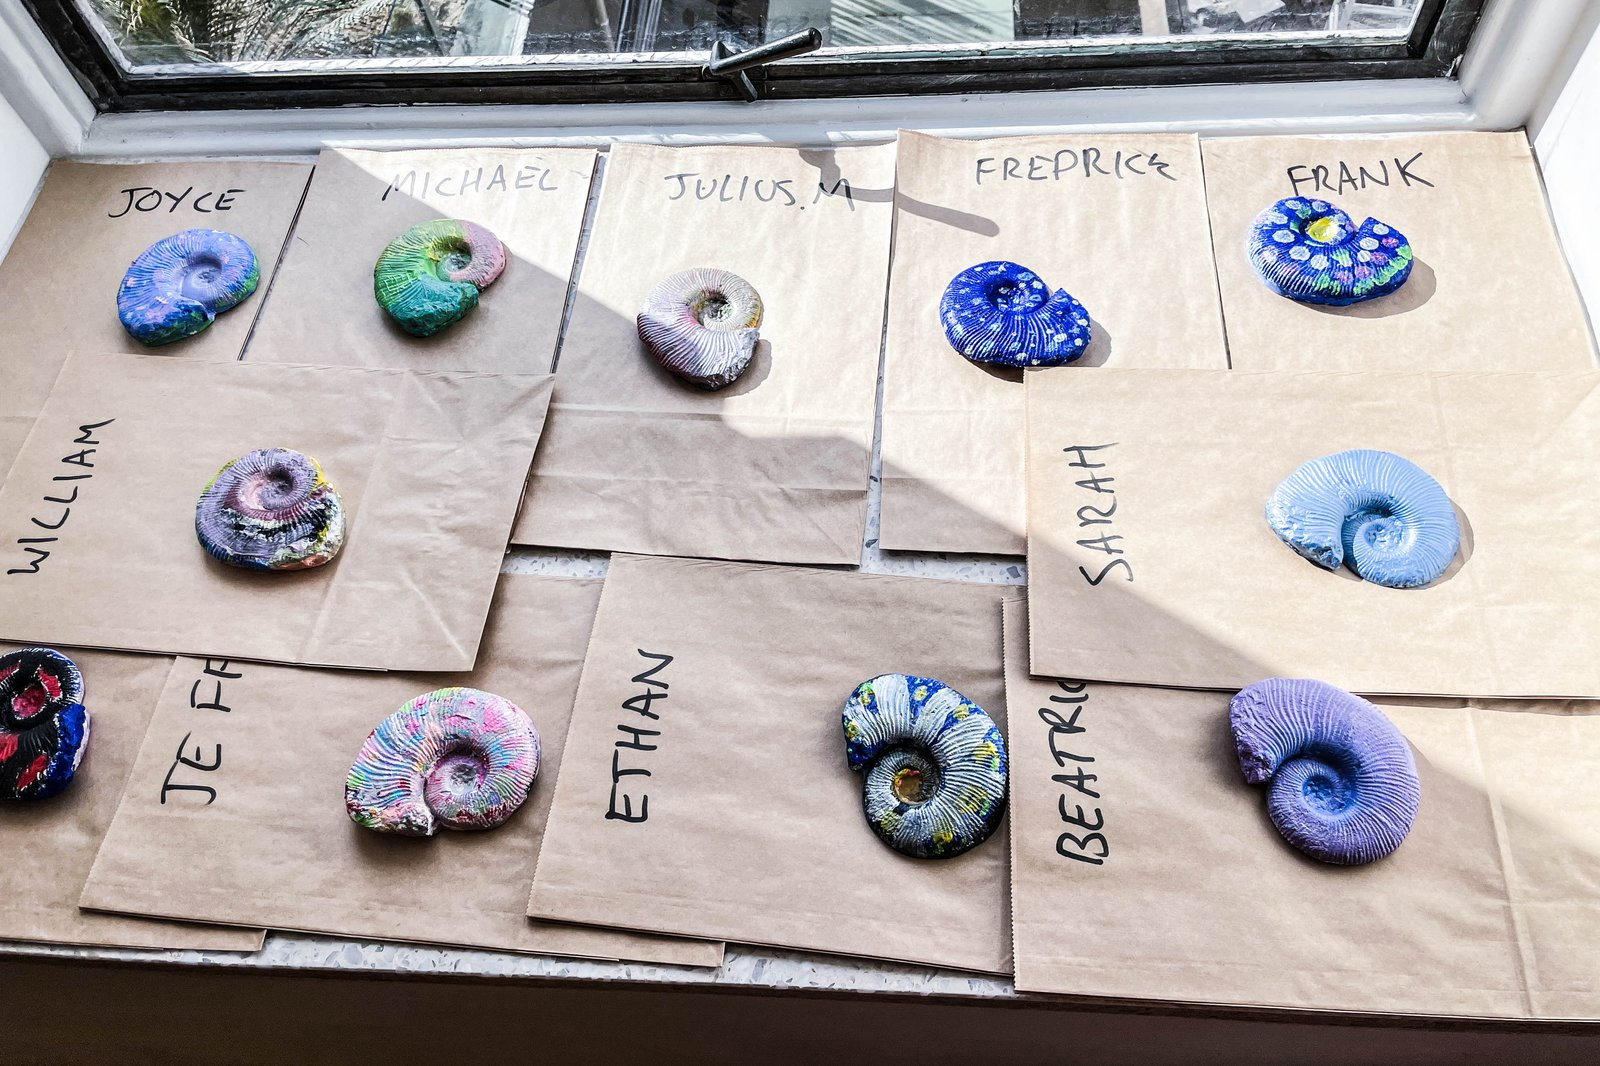 Painted ammonite fossil plaster casts